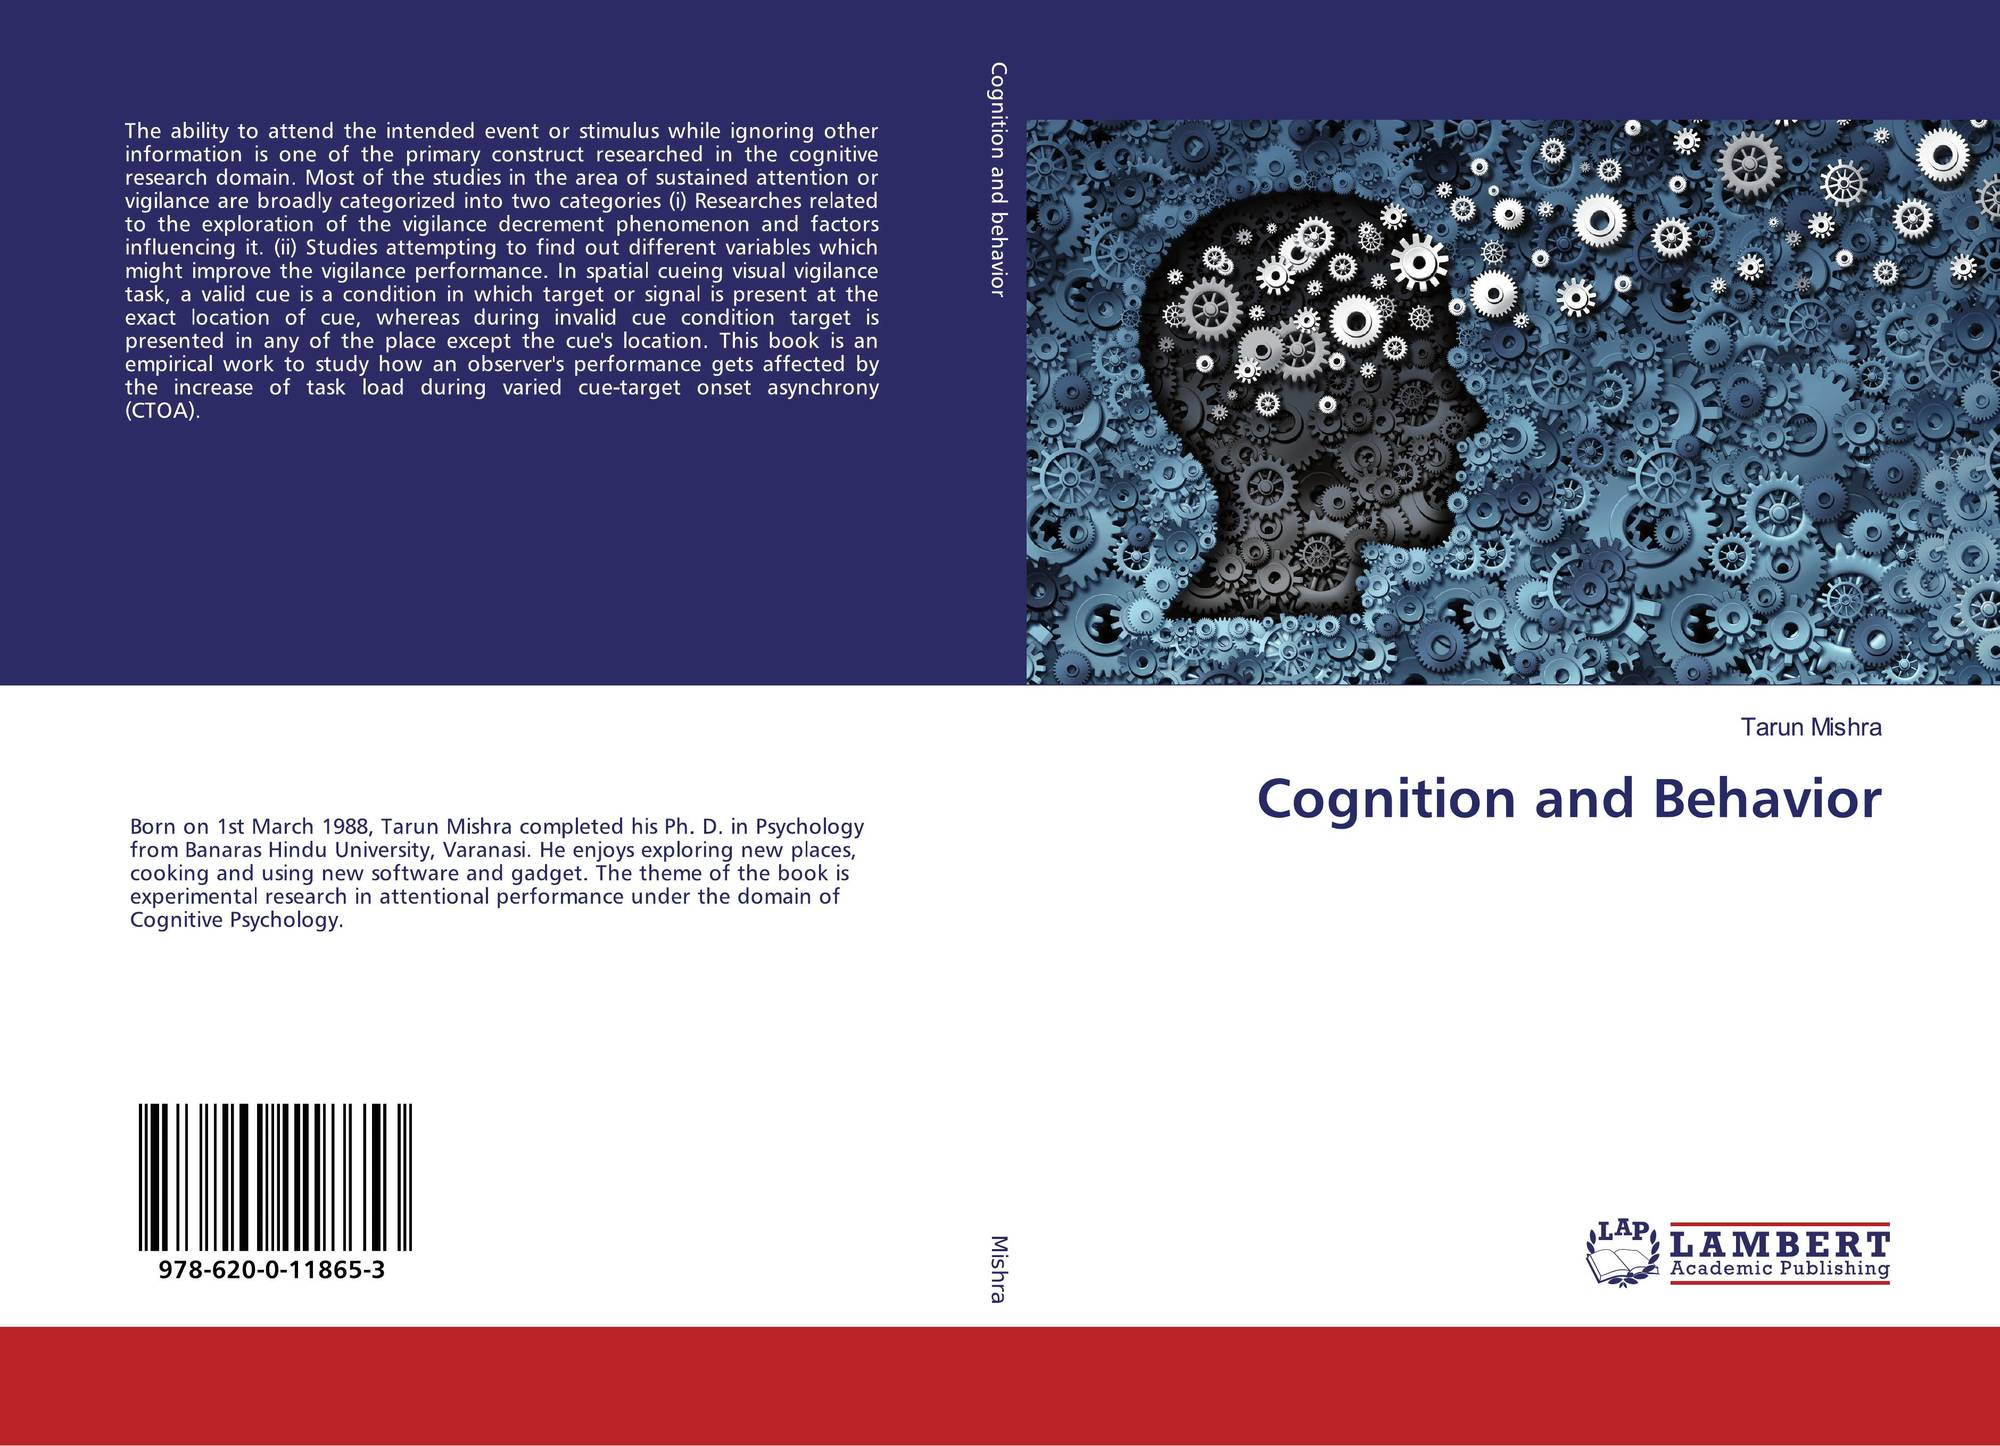 Cognition and Behavior, 978-620-0-11865-3, 6200118655 ,9786200118653